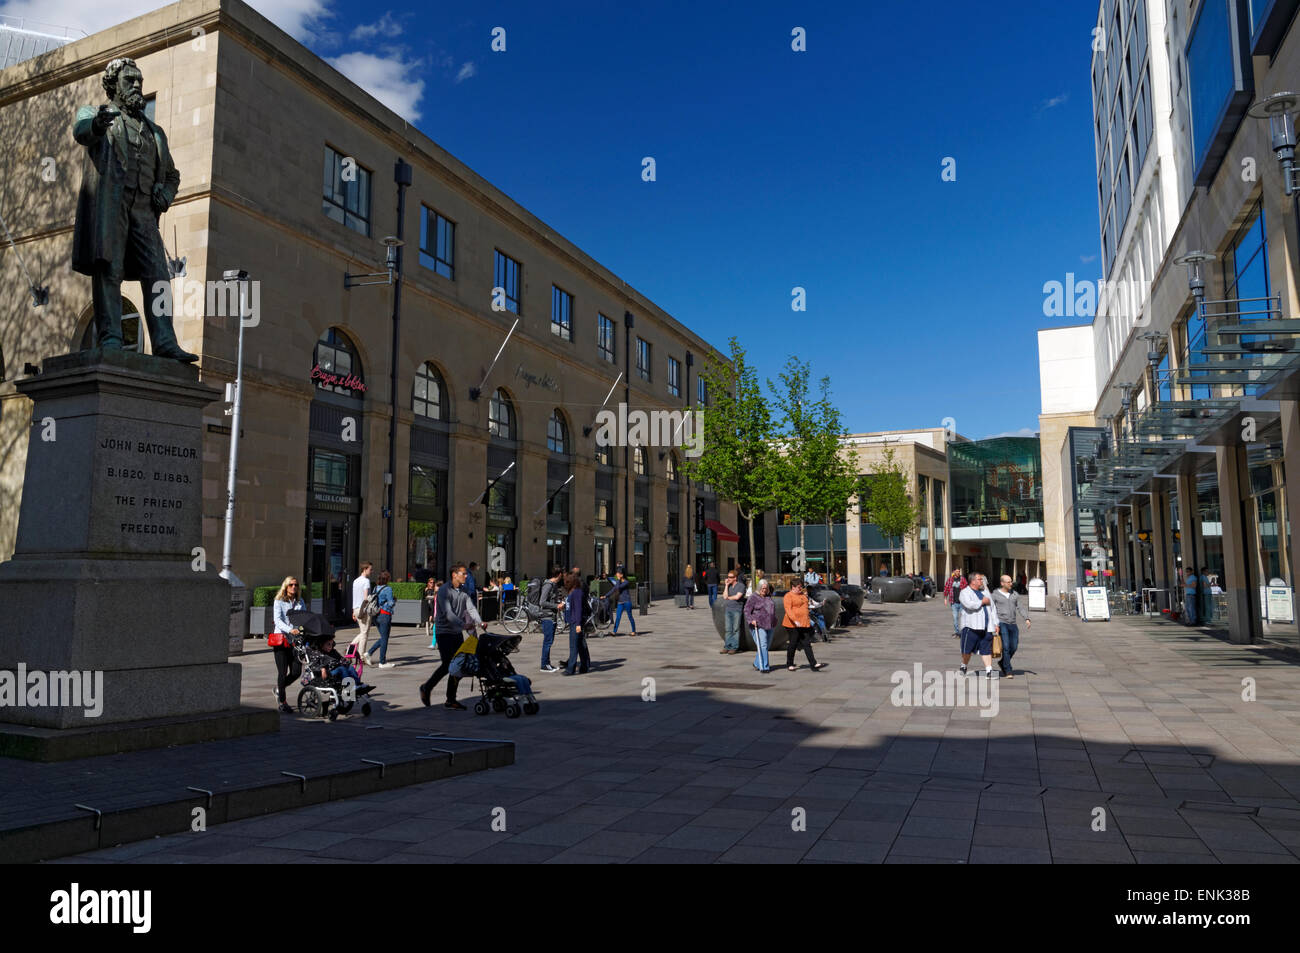 Statue of John Batchelor and shops, The Hayes, Cardiff, Wales. - Stock Image